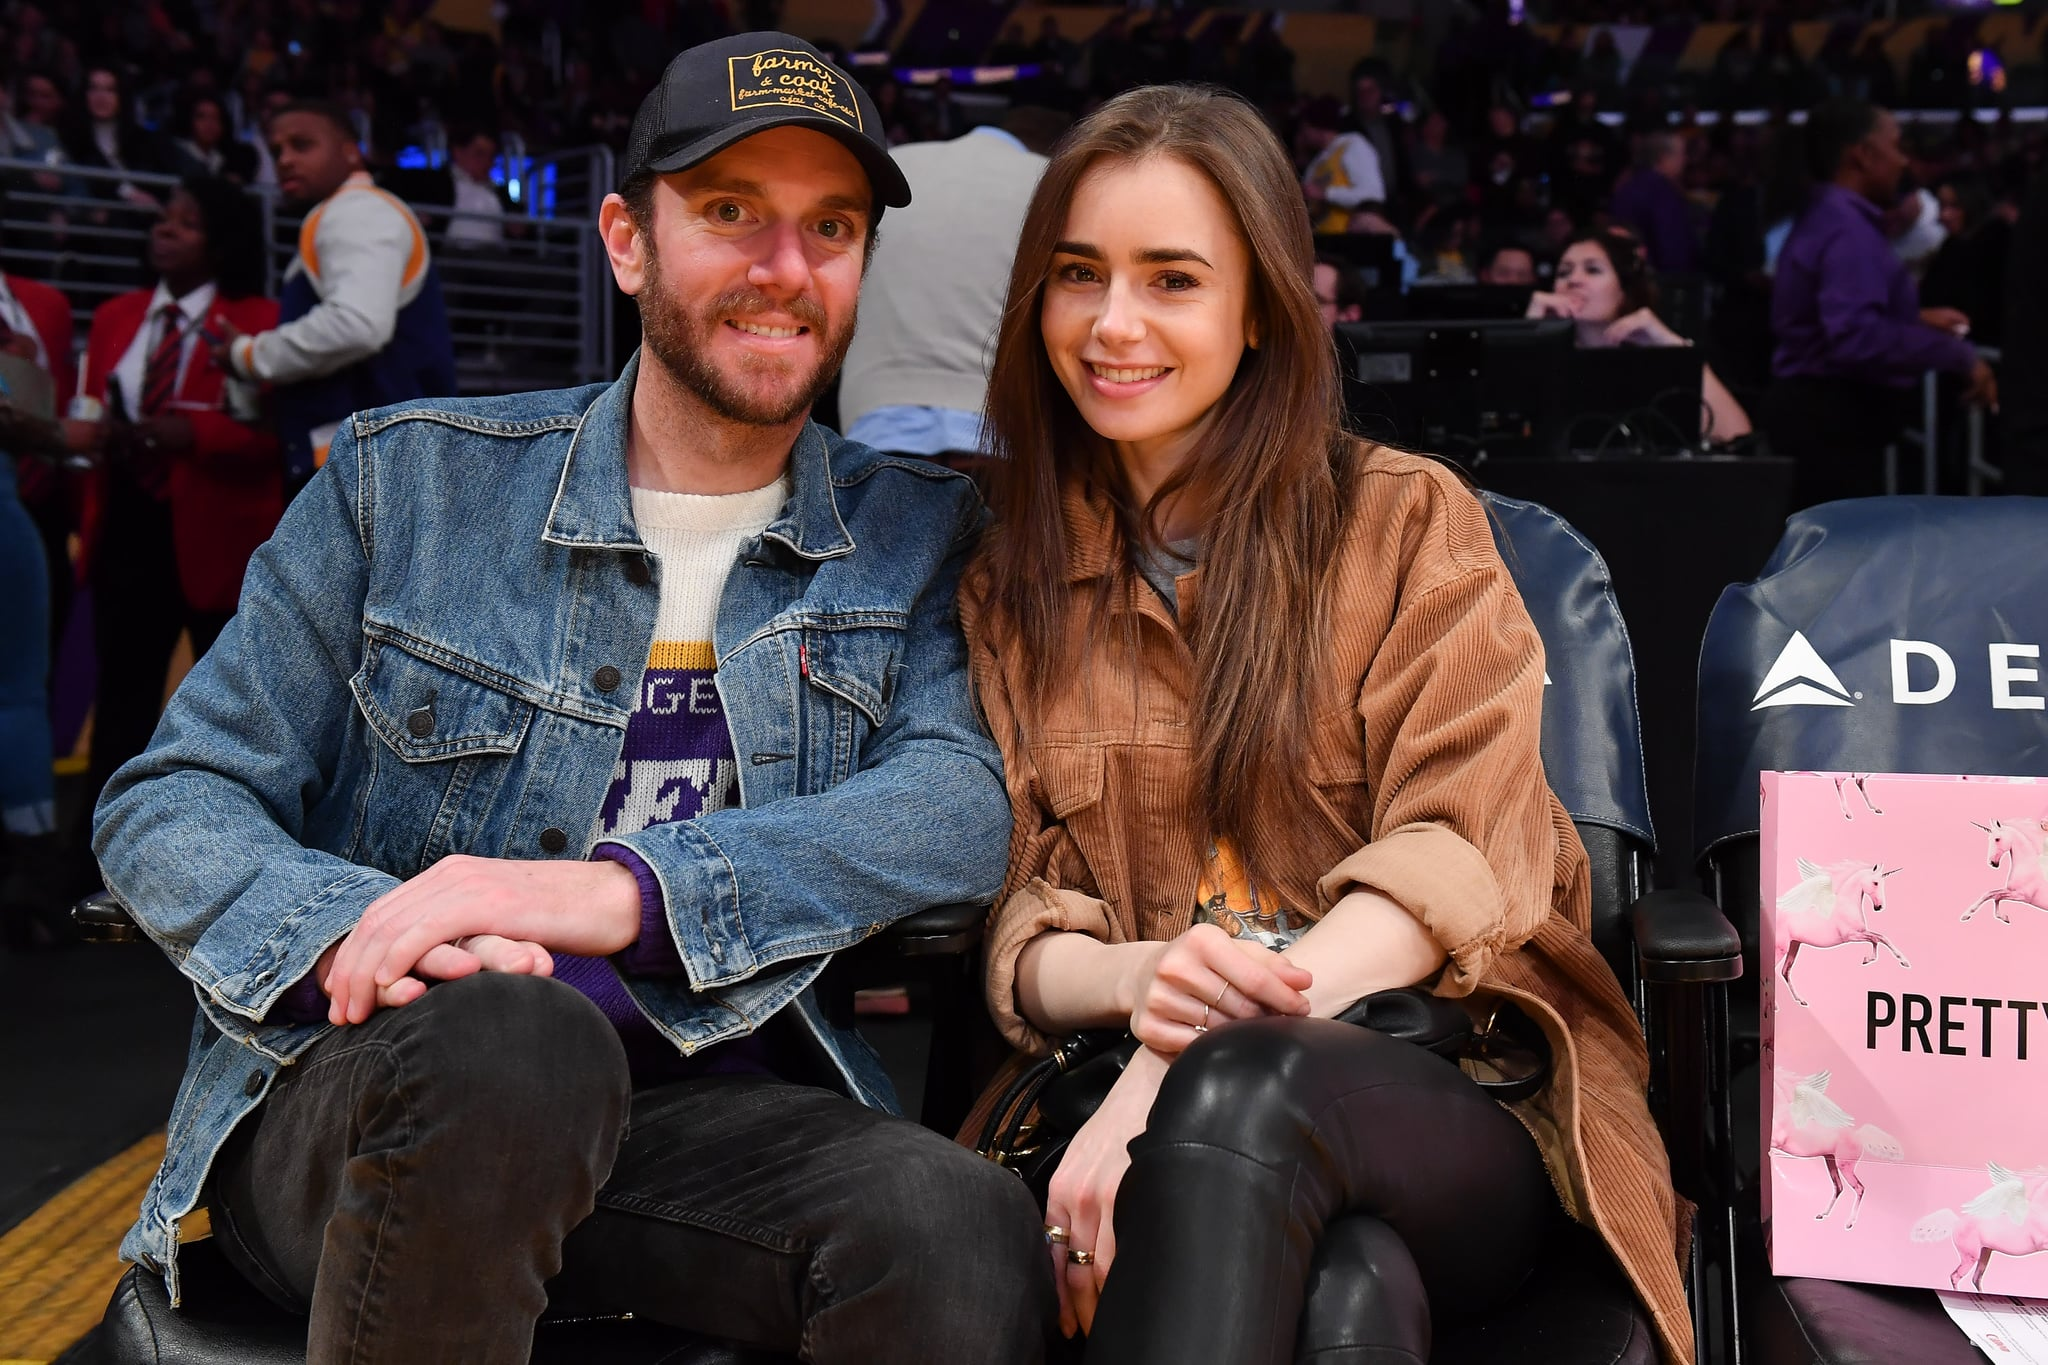 LOS ANGELES, CALIFORNIA - JANUARY 13: Lily Collins and Charlie McDowell attend a basketball game between the Los Angeles Lakers and the Cleveland Cavaliers at Staples Centre on January 13, 2020 in Los Angeles, California. (Photo by Allen Berezovsky/Getty Images)